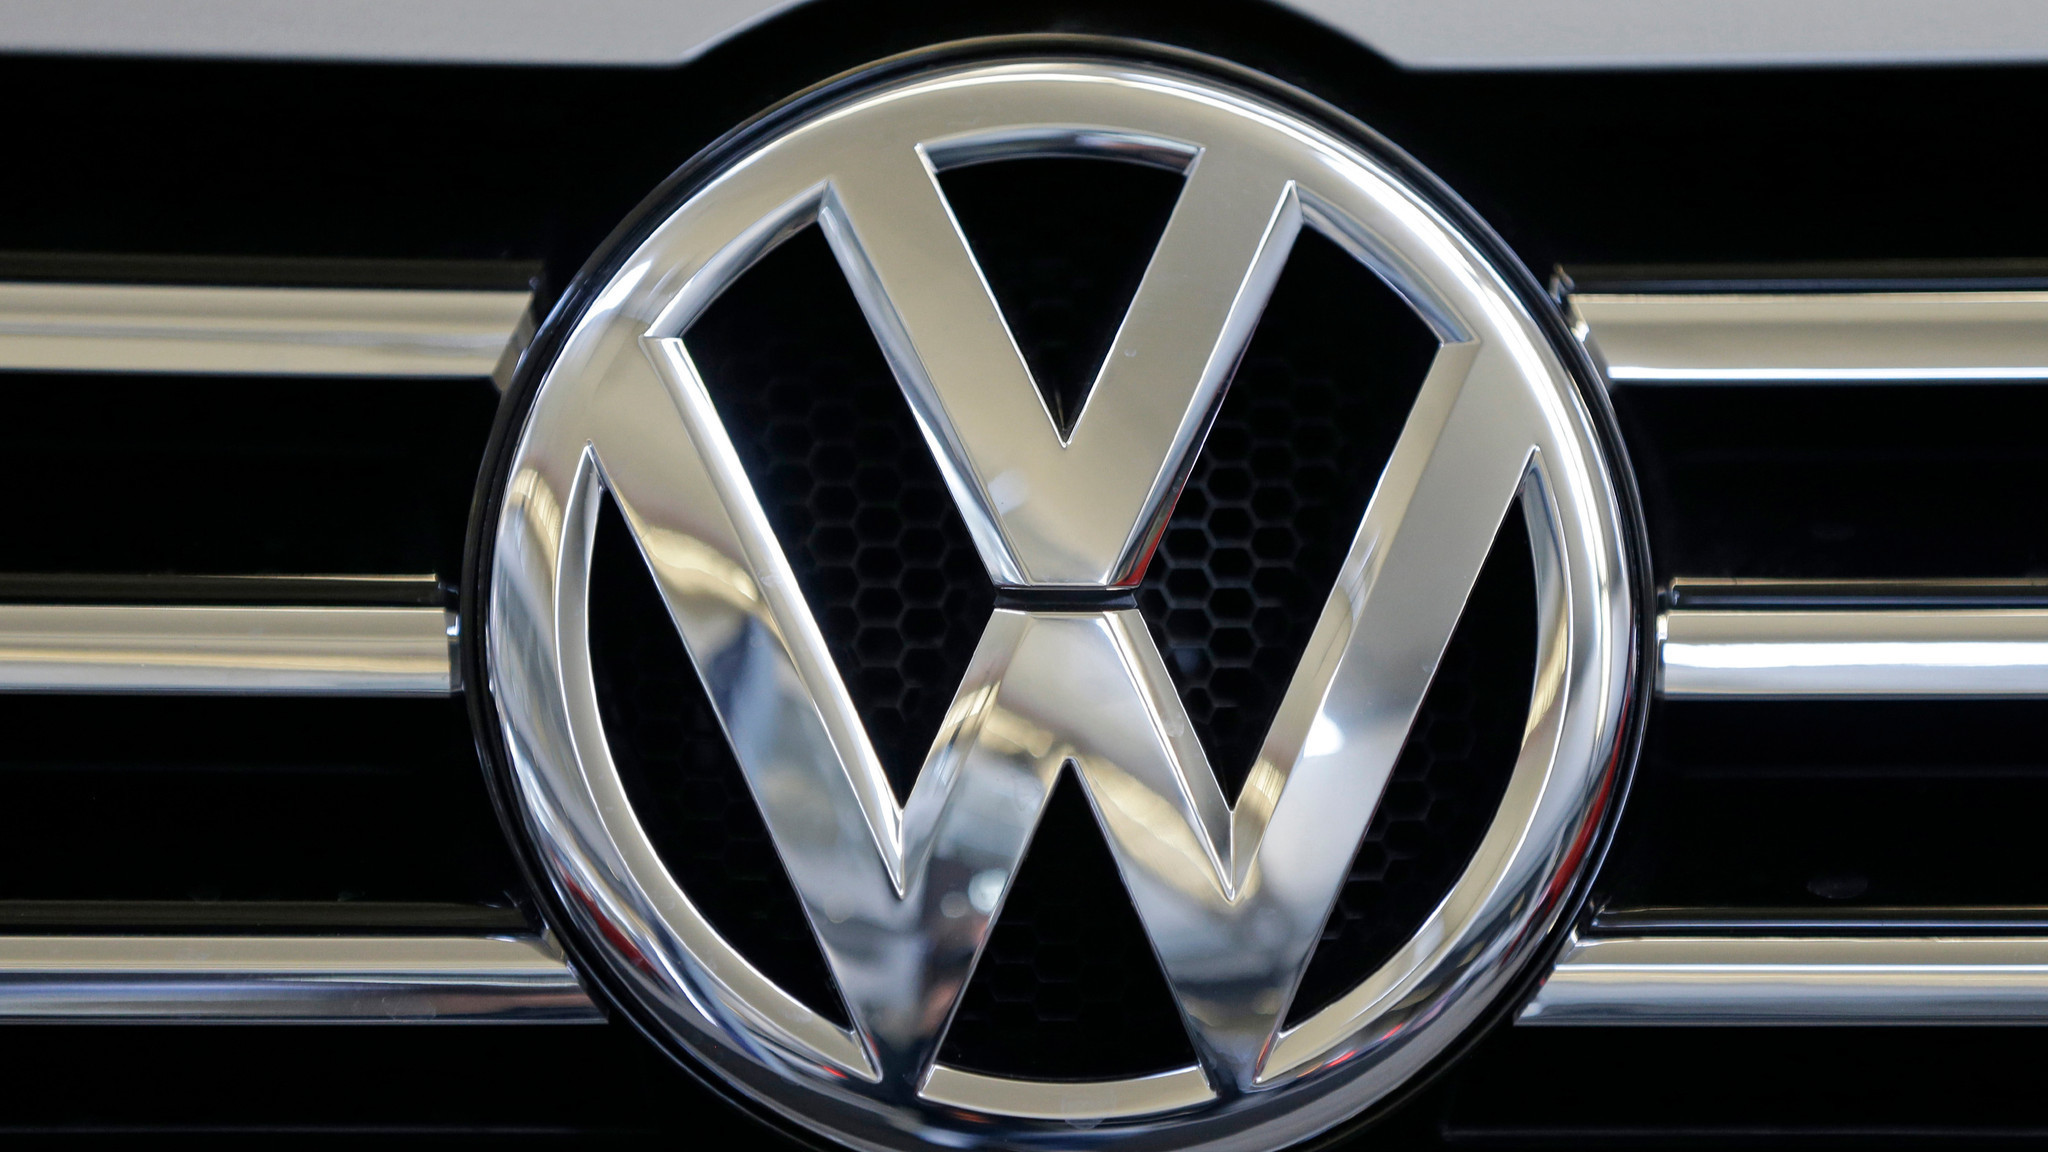 Six high-level Volkswagen employees indicted in emissions scandal